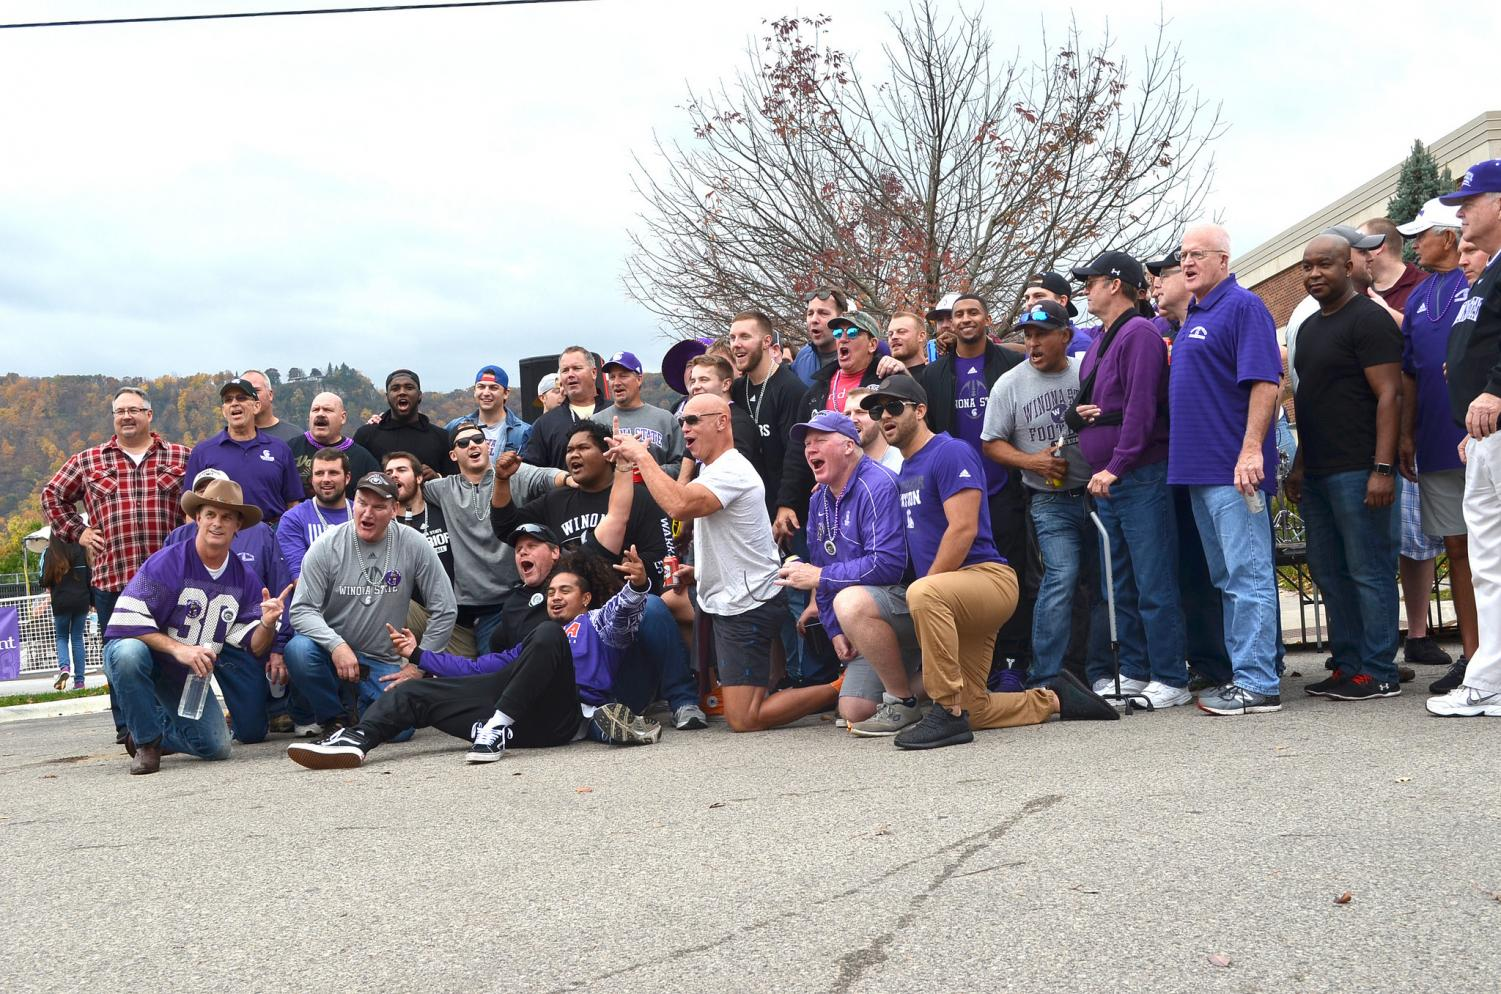 Winona State alumni and former members of the football team gather together for a photo before the 2017 Homecoming game during the Game Day Experience. Events like the Game Day Experience are subject to an exception from the Winona State dry campus policy after some paperwork.